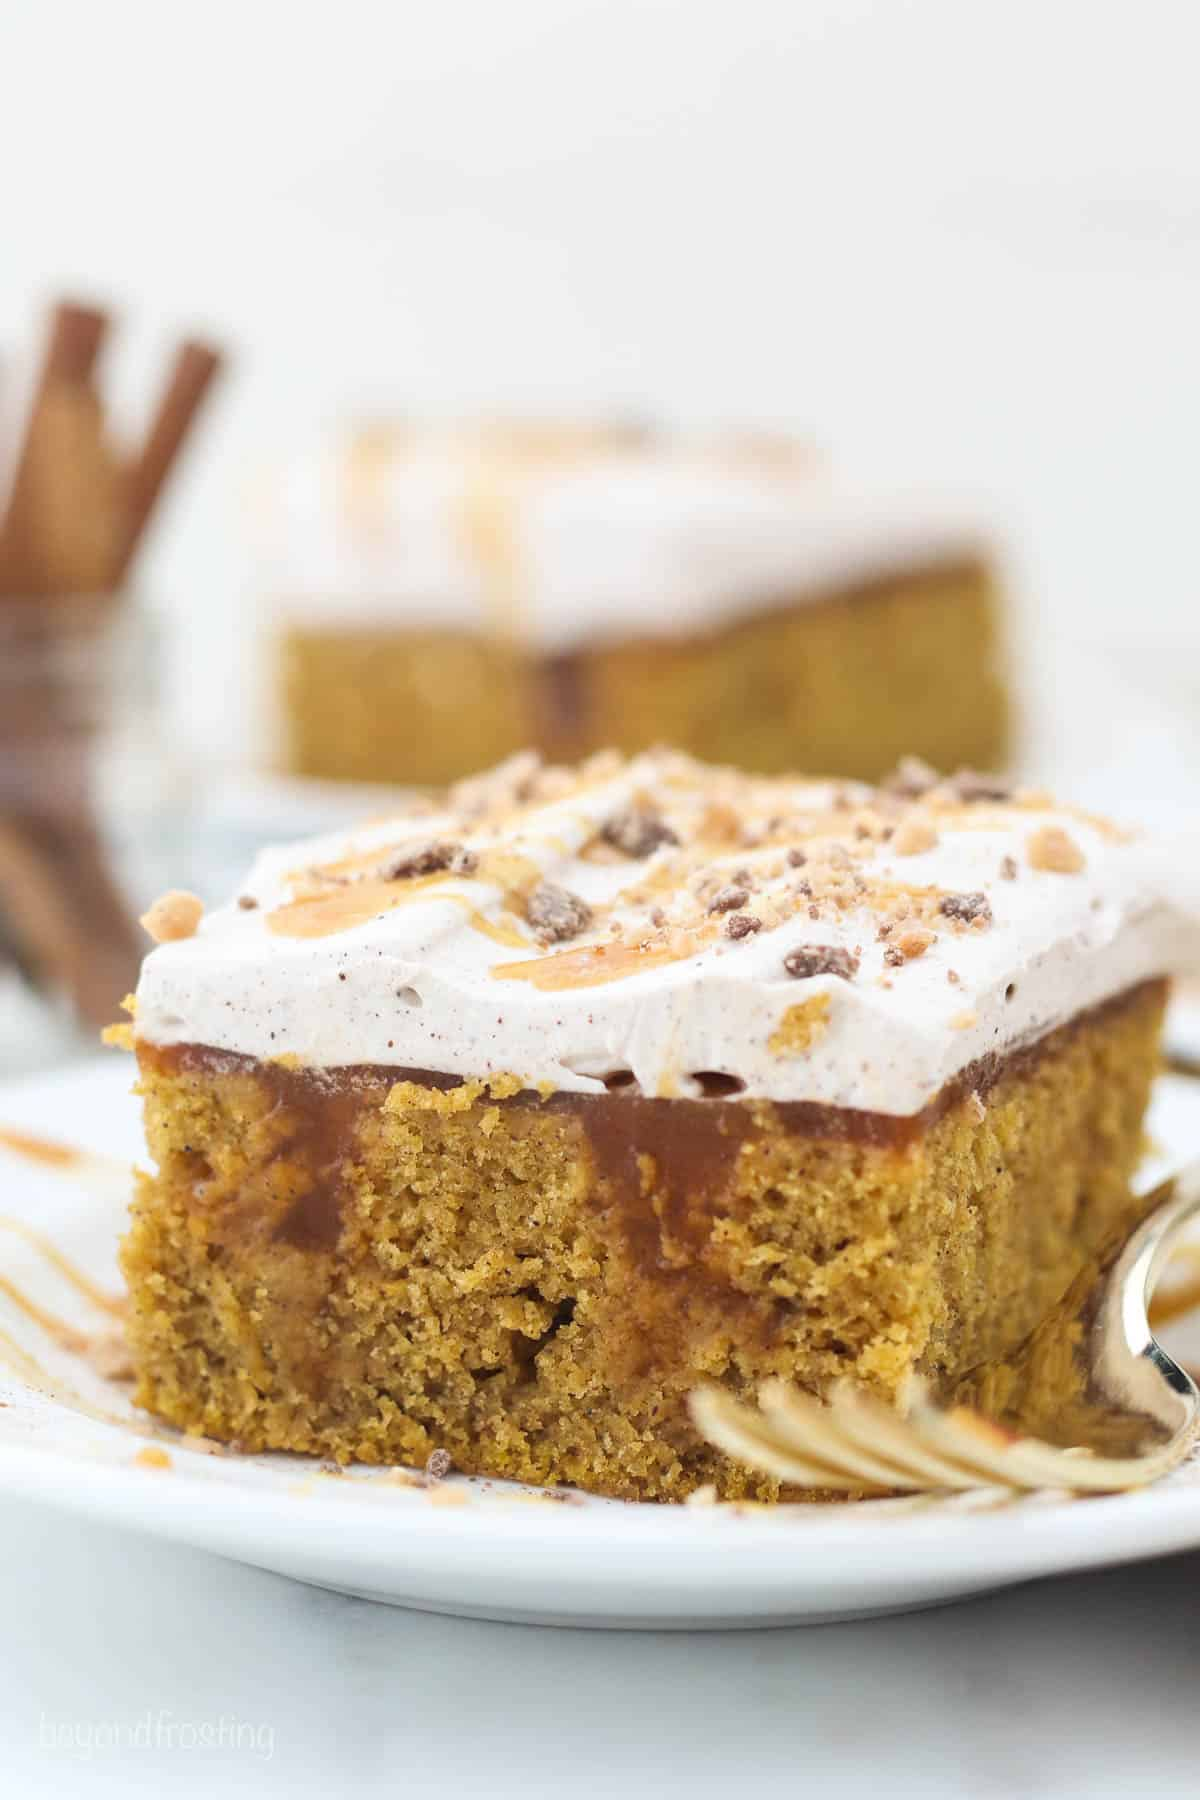 A close up of a shot of slice of pumpkin cake with a blurred cinnamon sticks in the background